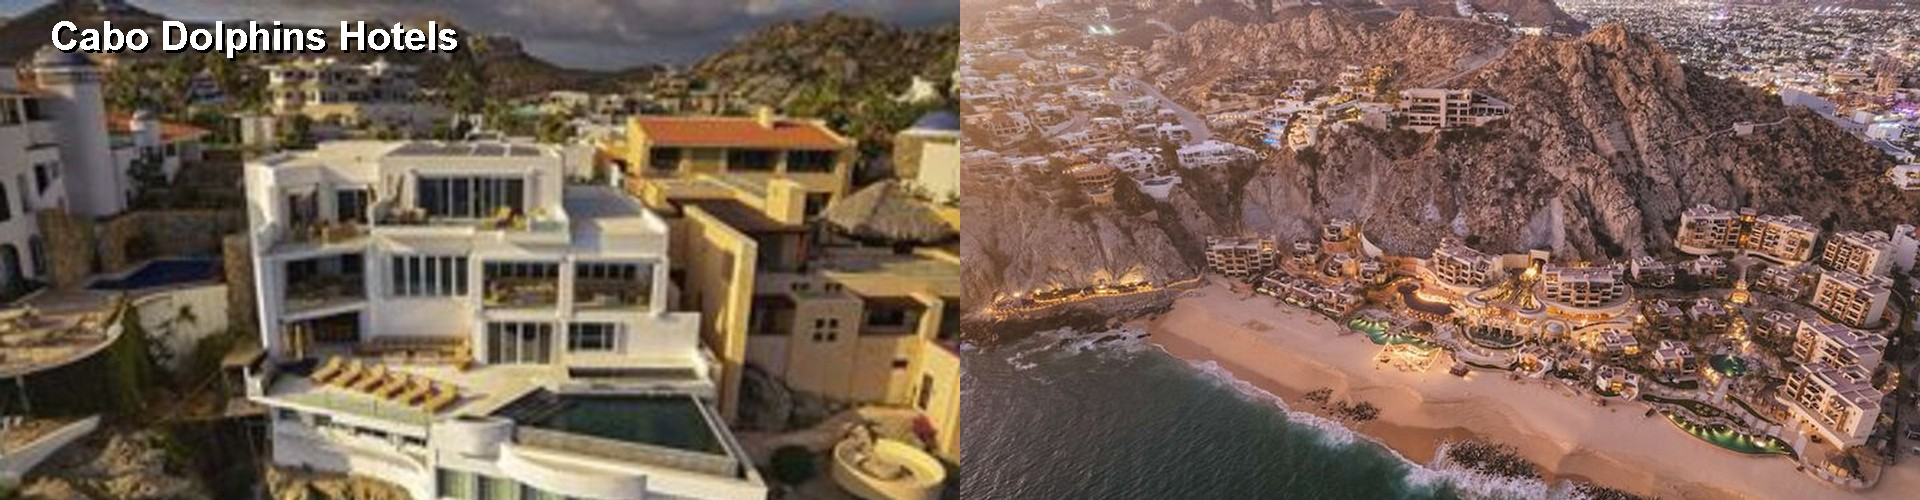 5 Best Hotels near Cabo Dolphins